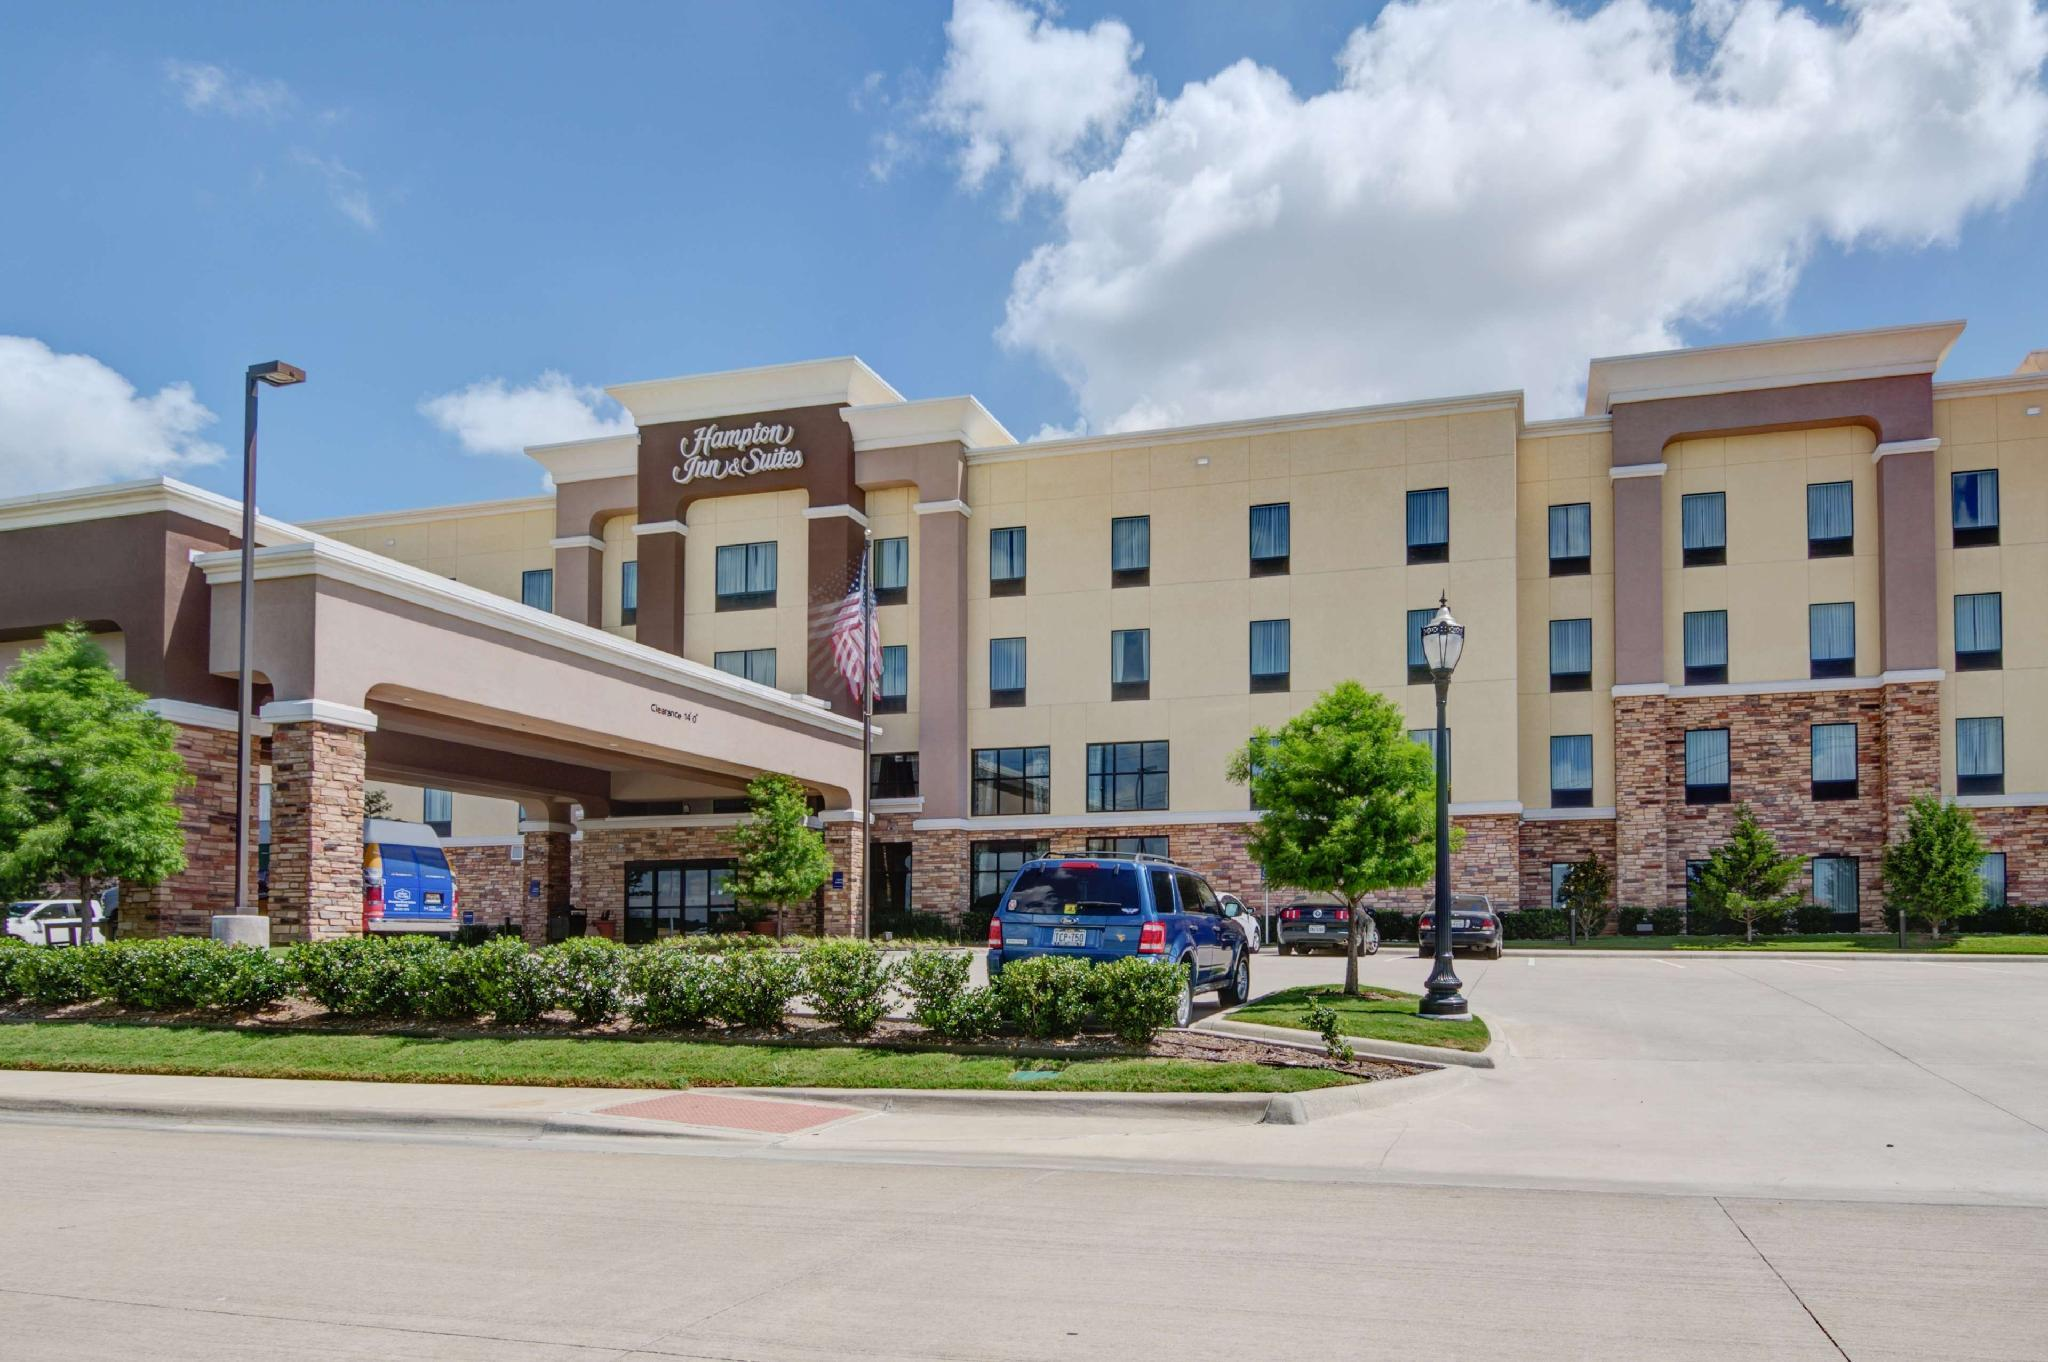 Hampton Inn And Suites Trophy Club TX